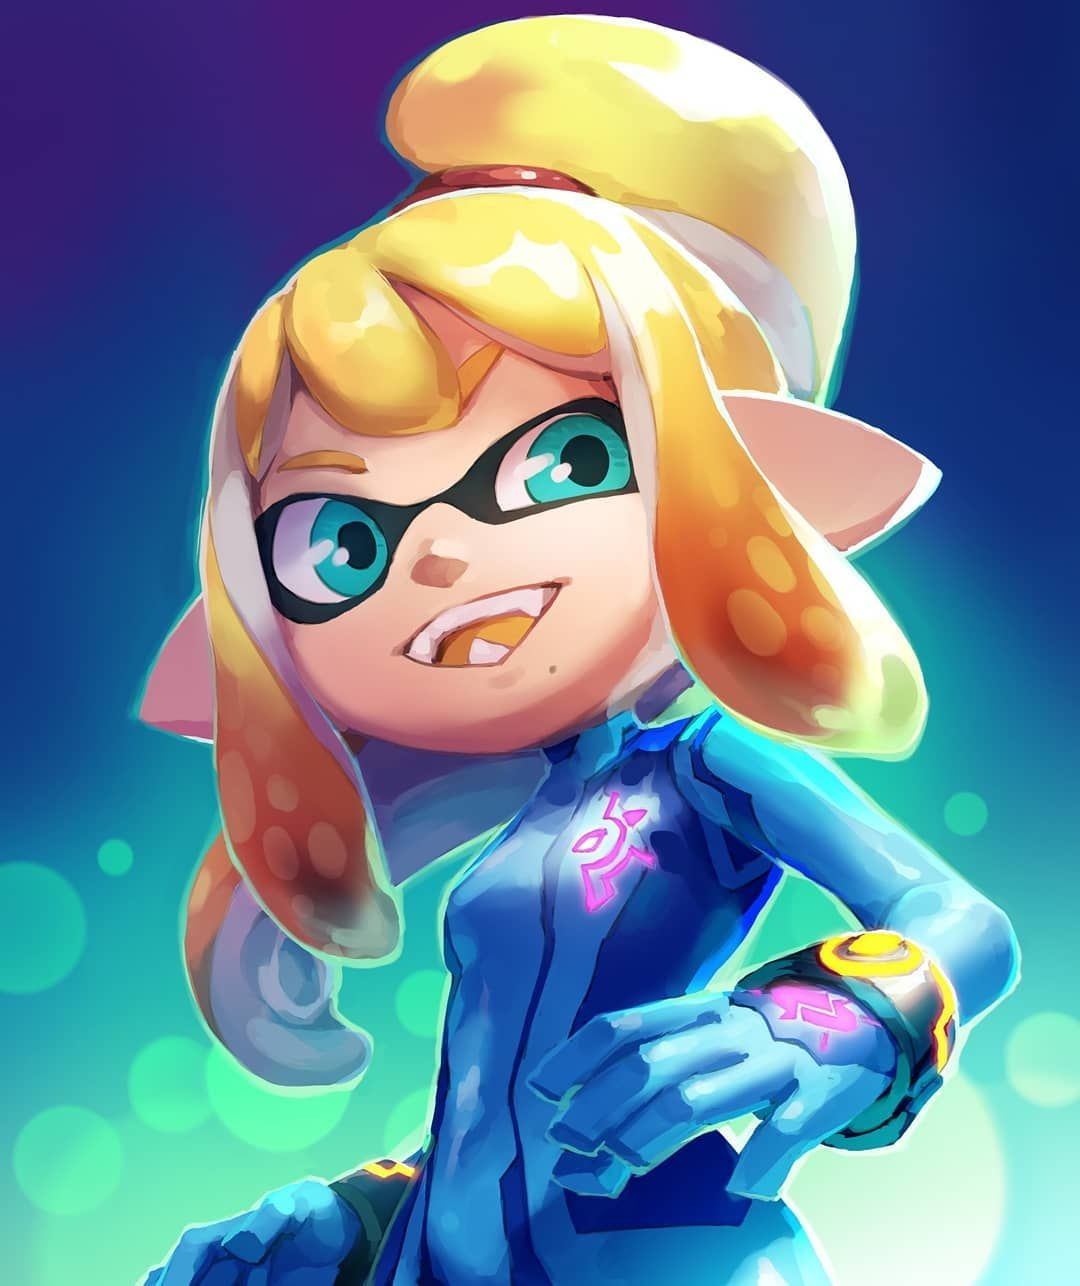 Zero Suit Woomy🦑 I Credited The Wrong Person, The Real